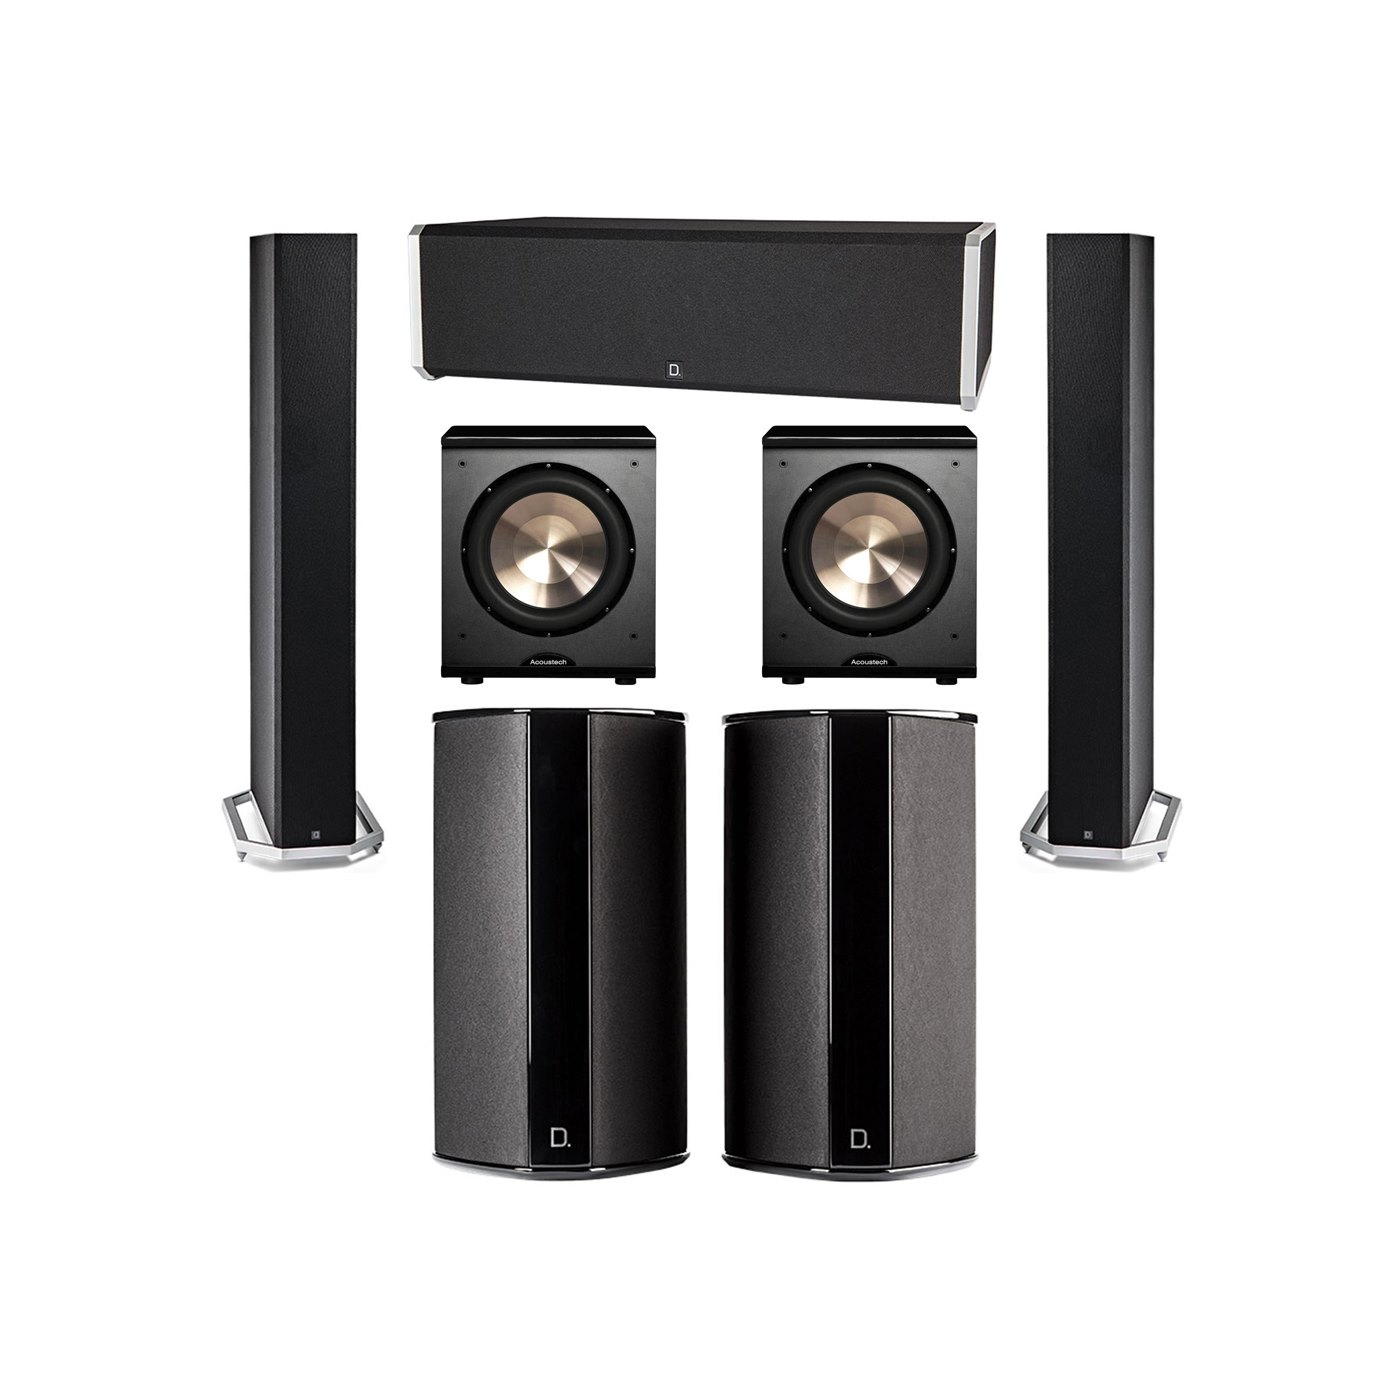 Definitive Technology 5.2 System with 2 BP9060 Tower Speakers, 1 CS9040 Center Channel Speaker, 2 SR9080 Surround Speaker, 2 BIC PL-200 Subwoofer